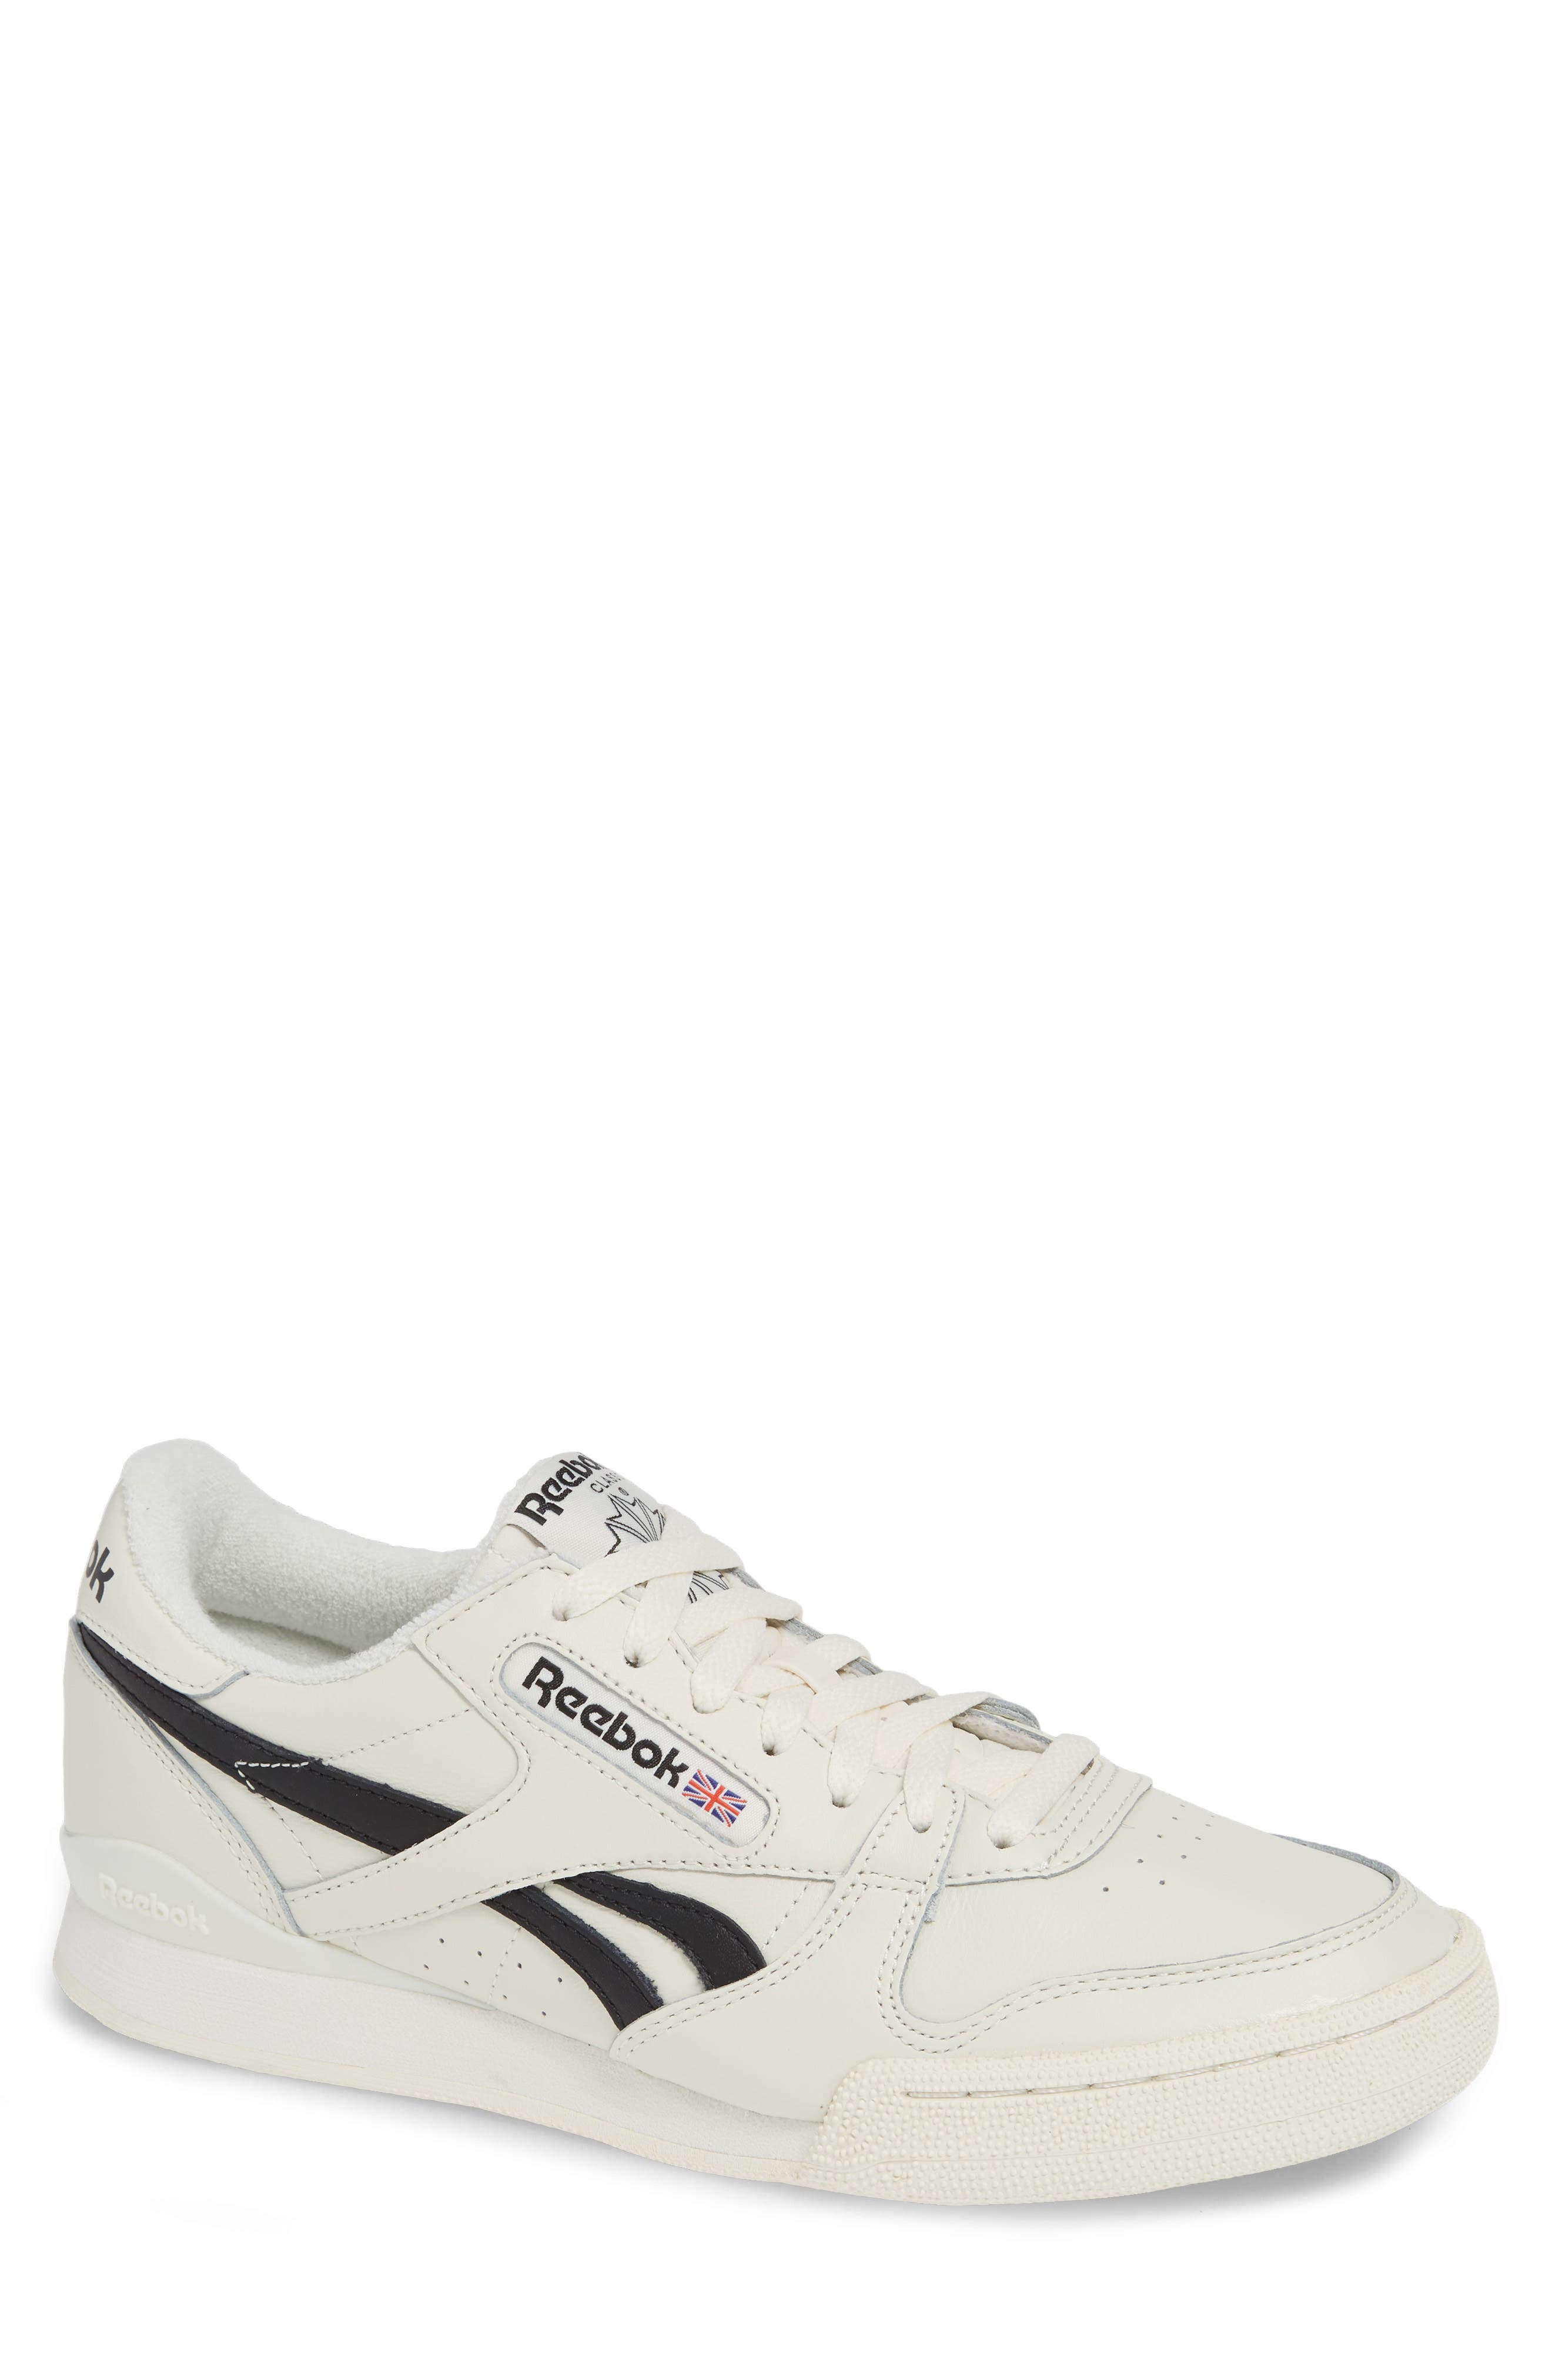 Phase 1 Vintage Pro Sneaker,                         Main,                         color, CHALK/ BLACK